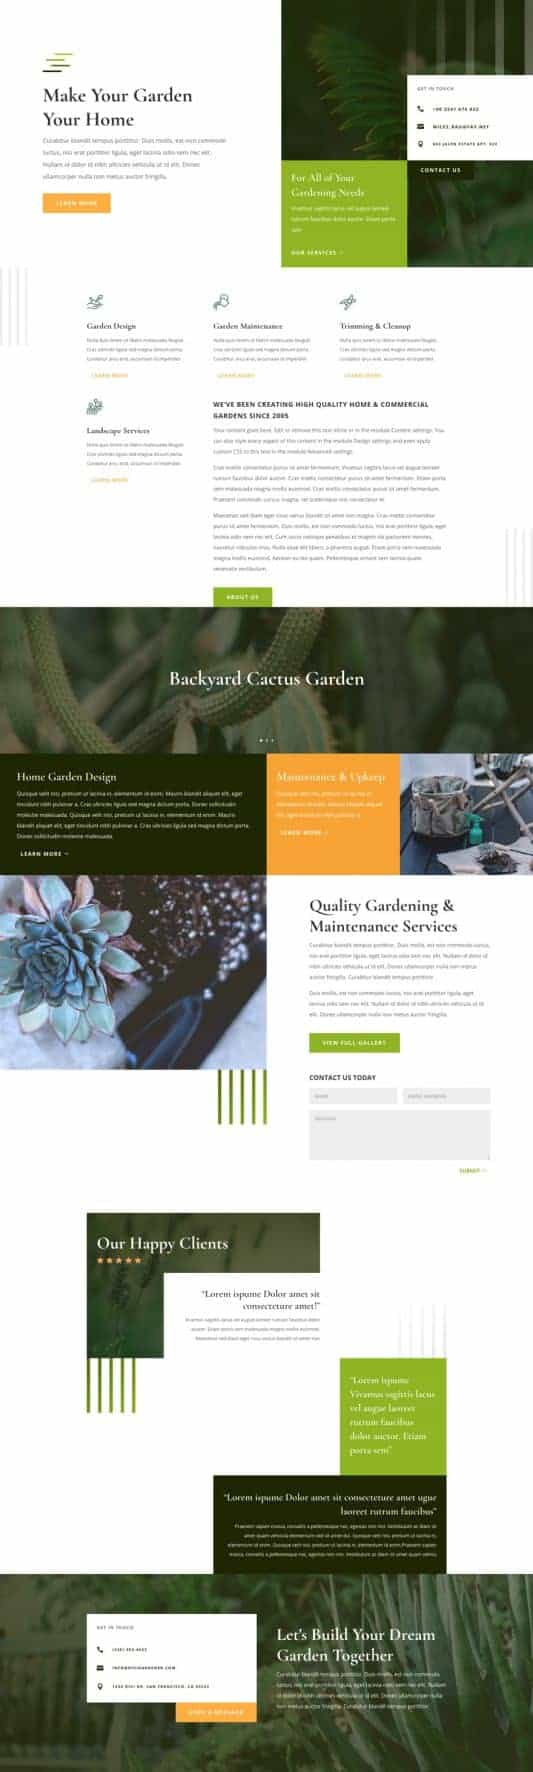 The Gardener Page Style: Homepage Design 1